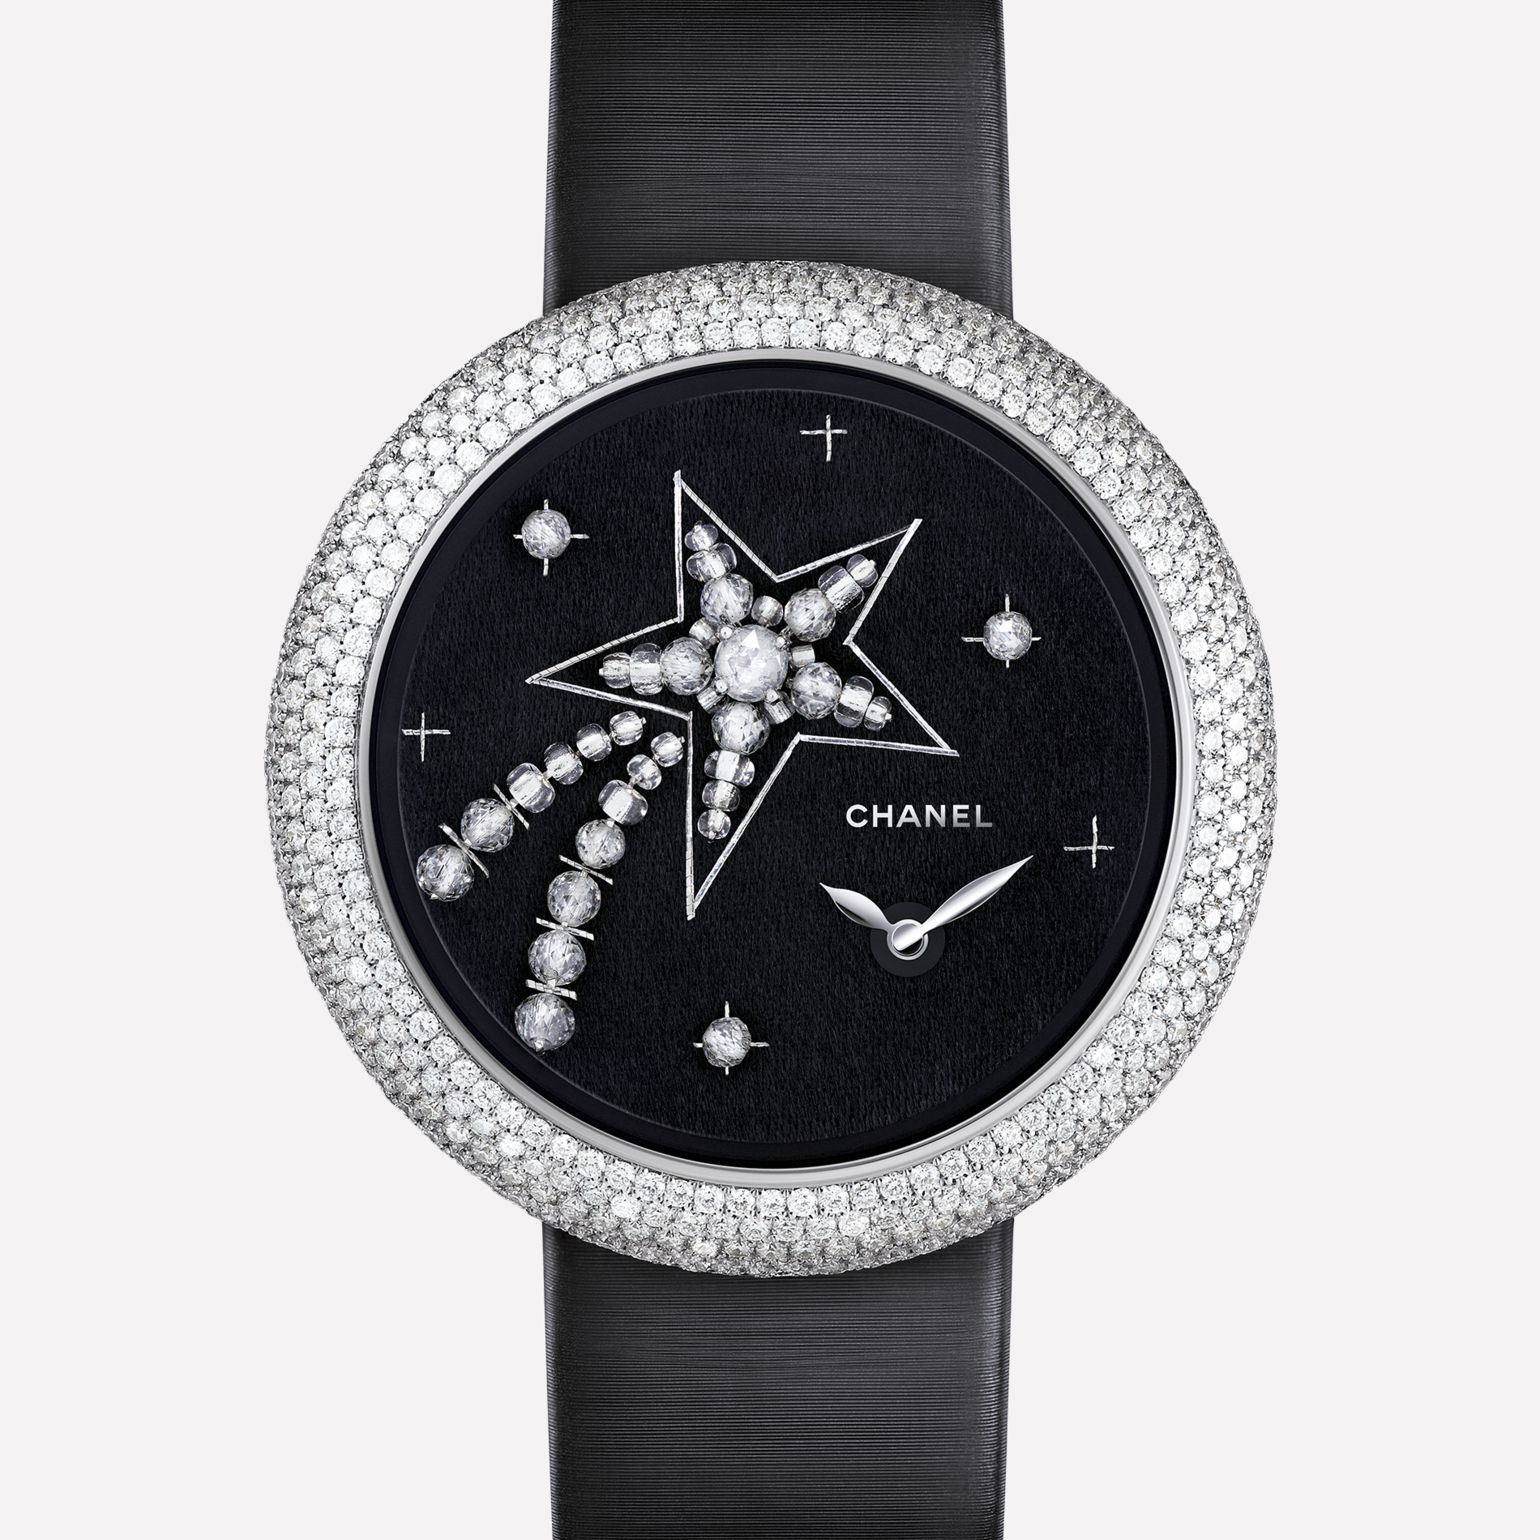 Mademoiselle Privé Watch Lesage Comète embroidery - Diamonds and glass beads